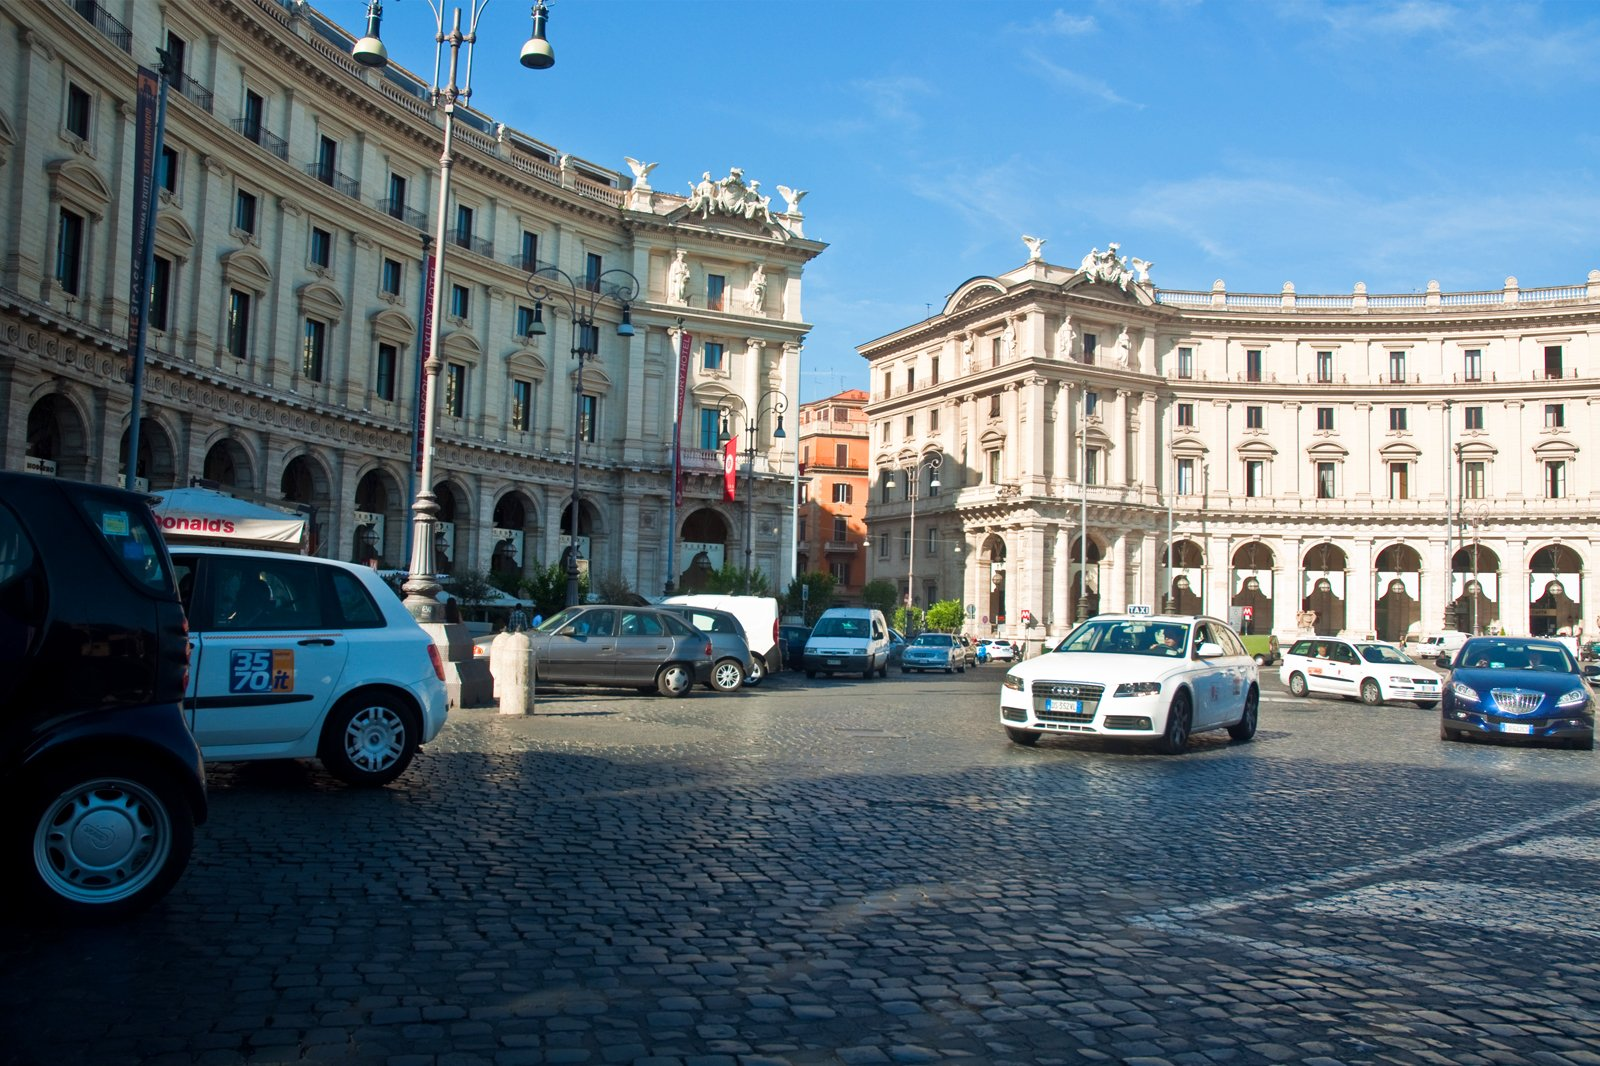 All You Need to Know Before You Take a Taxi in Rome - How to